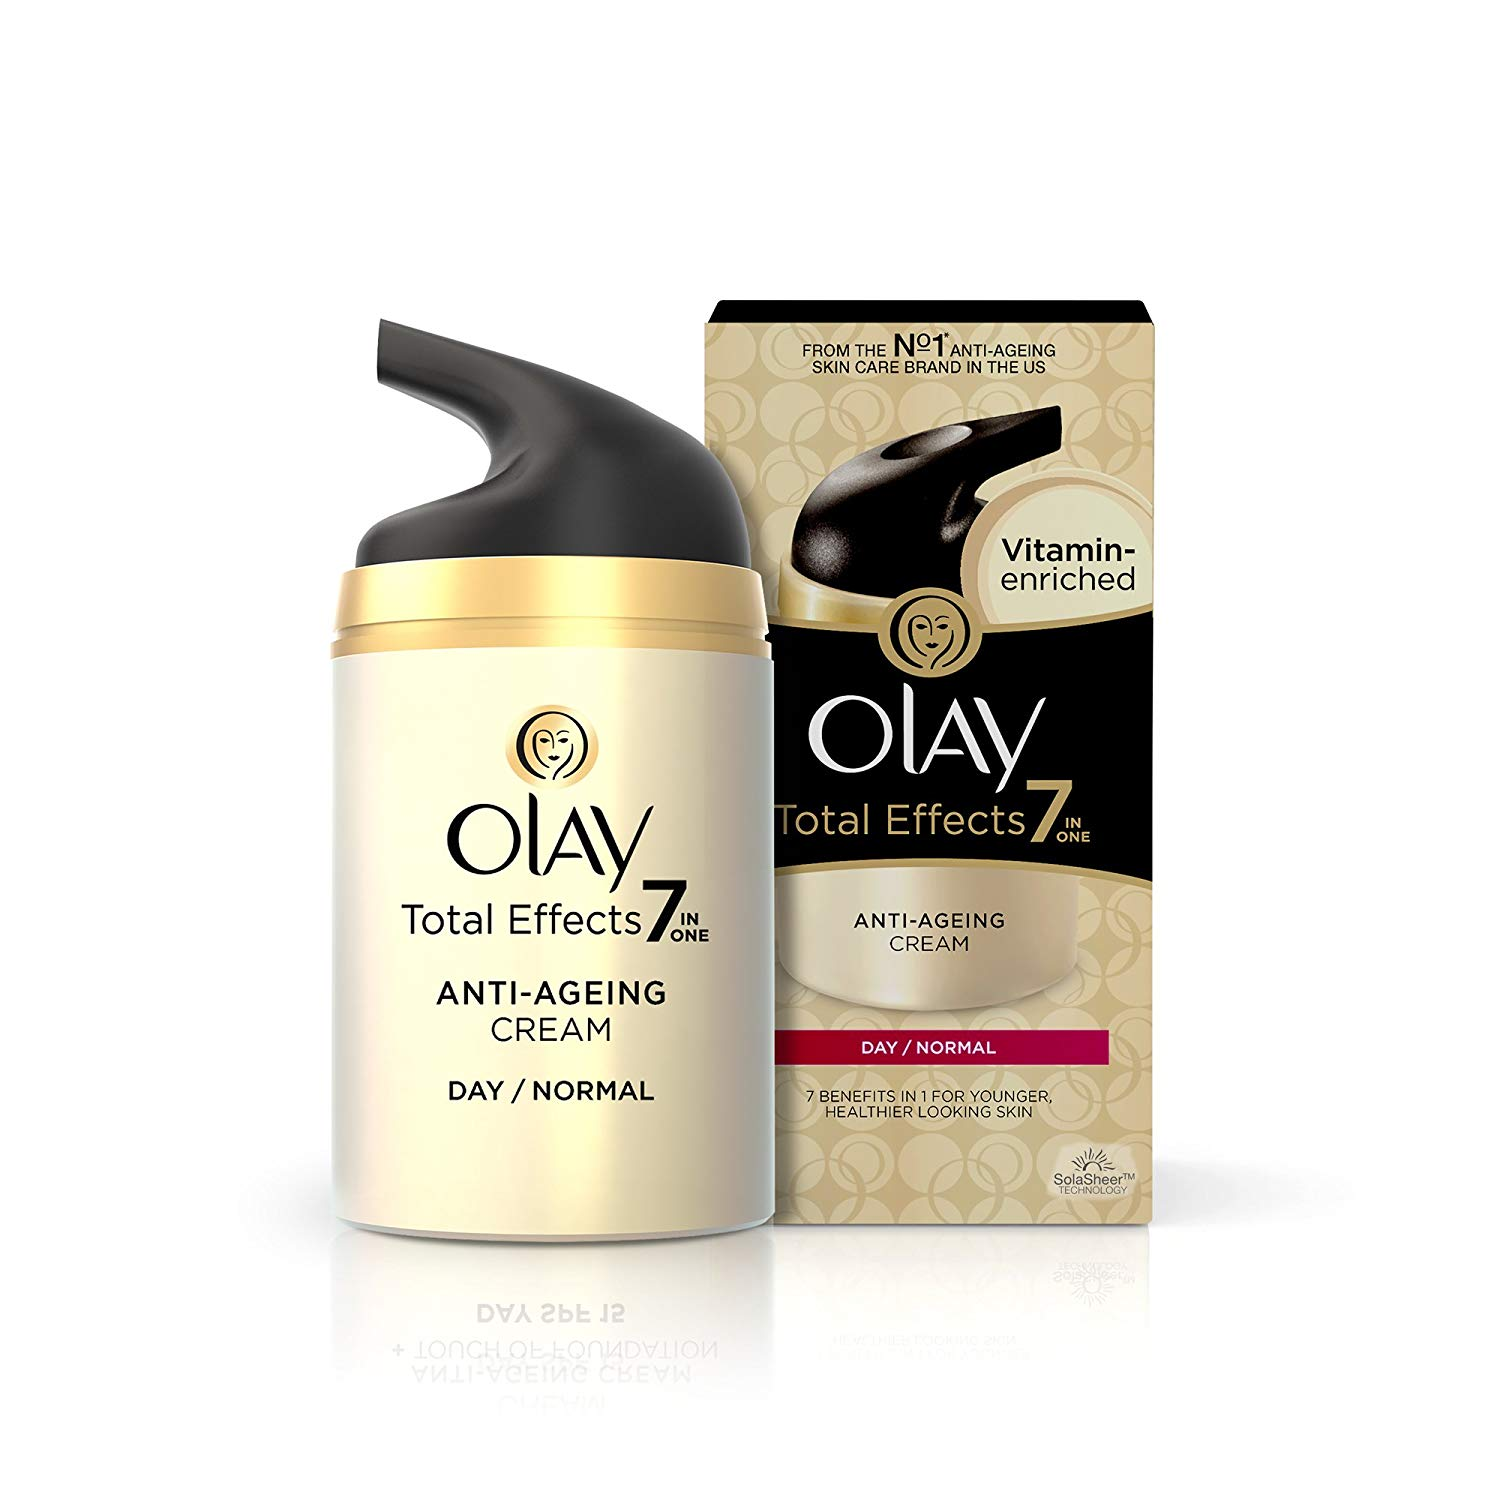 Olay Total Effects Normal NUV 50gm